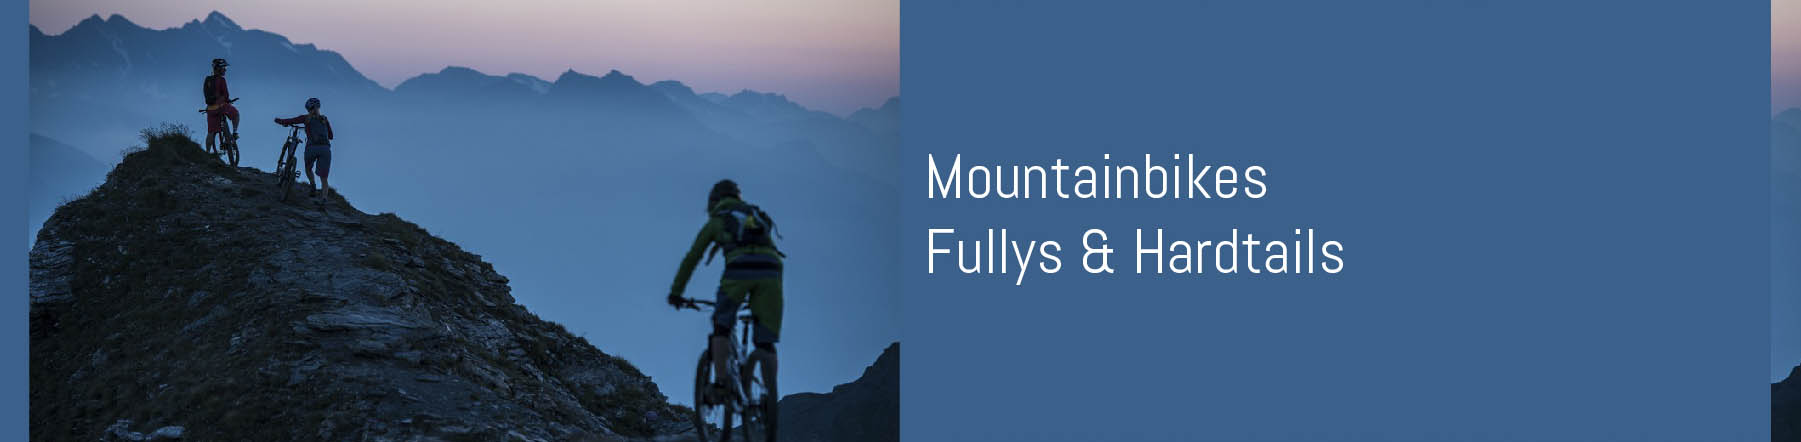 Banner Mountainbikes